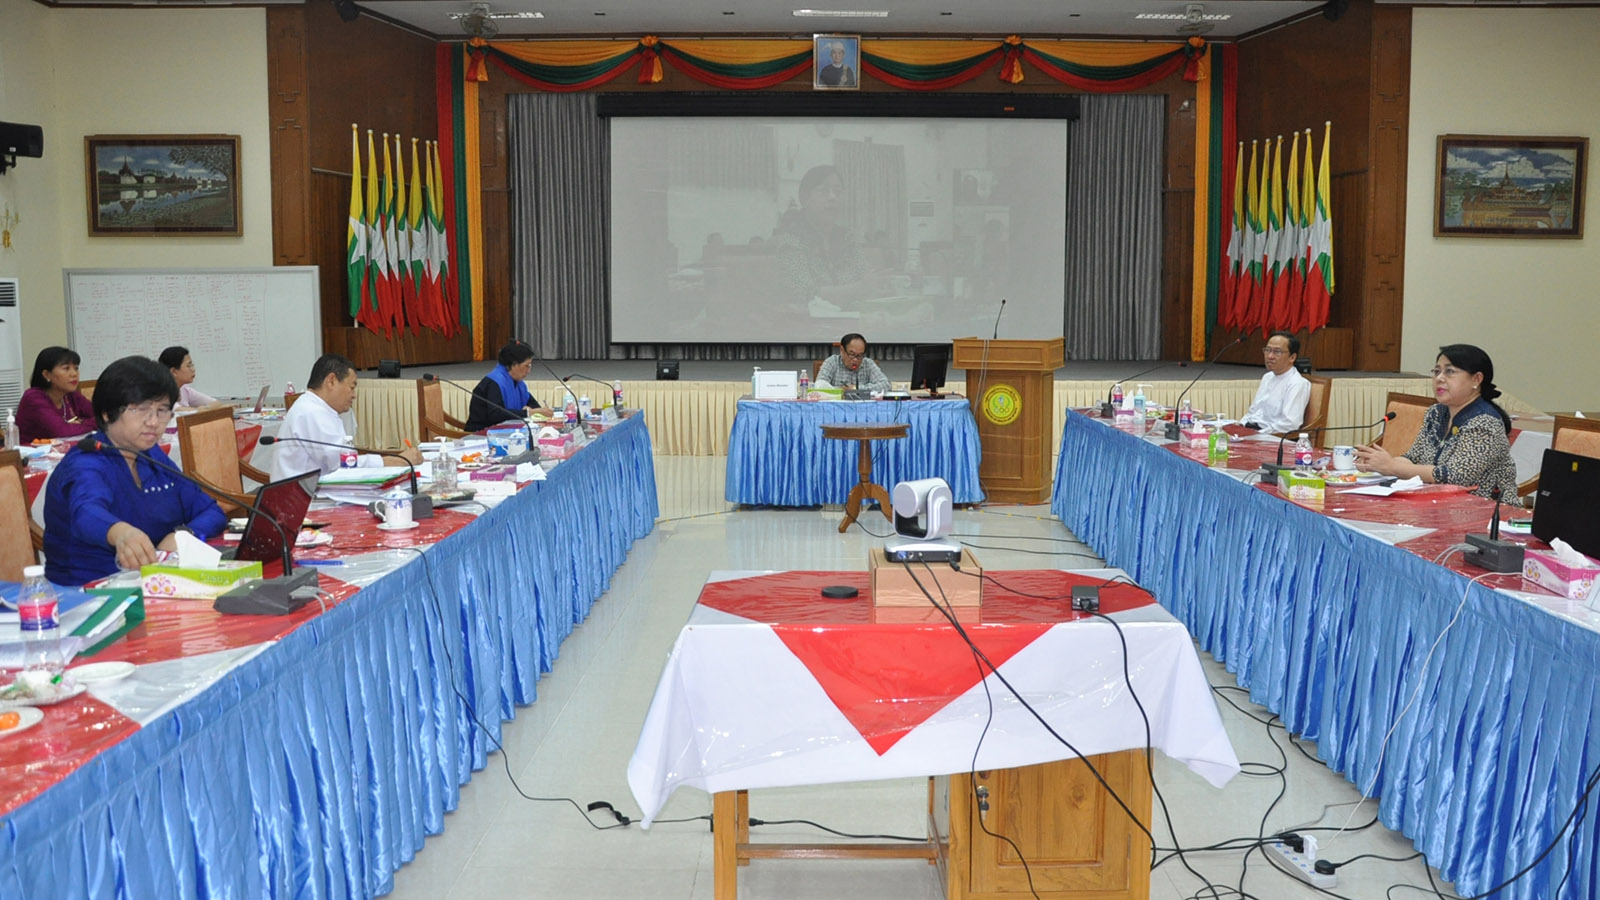 Union Minister Dr Myint Htwe attends the coordination meeting through video conferencing in Nay Pyi Taw yesterday. Photo: MNA